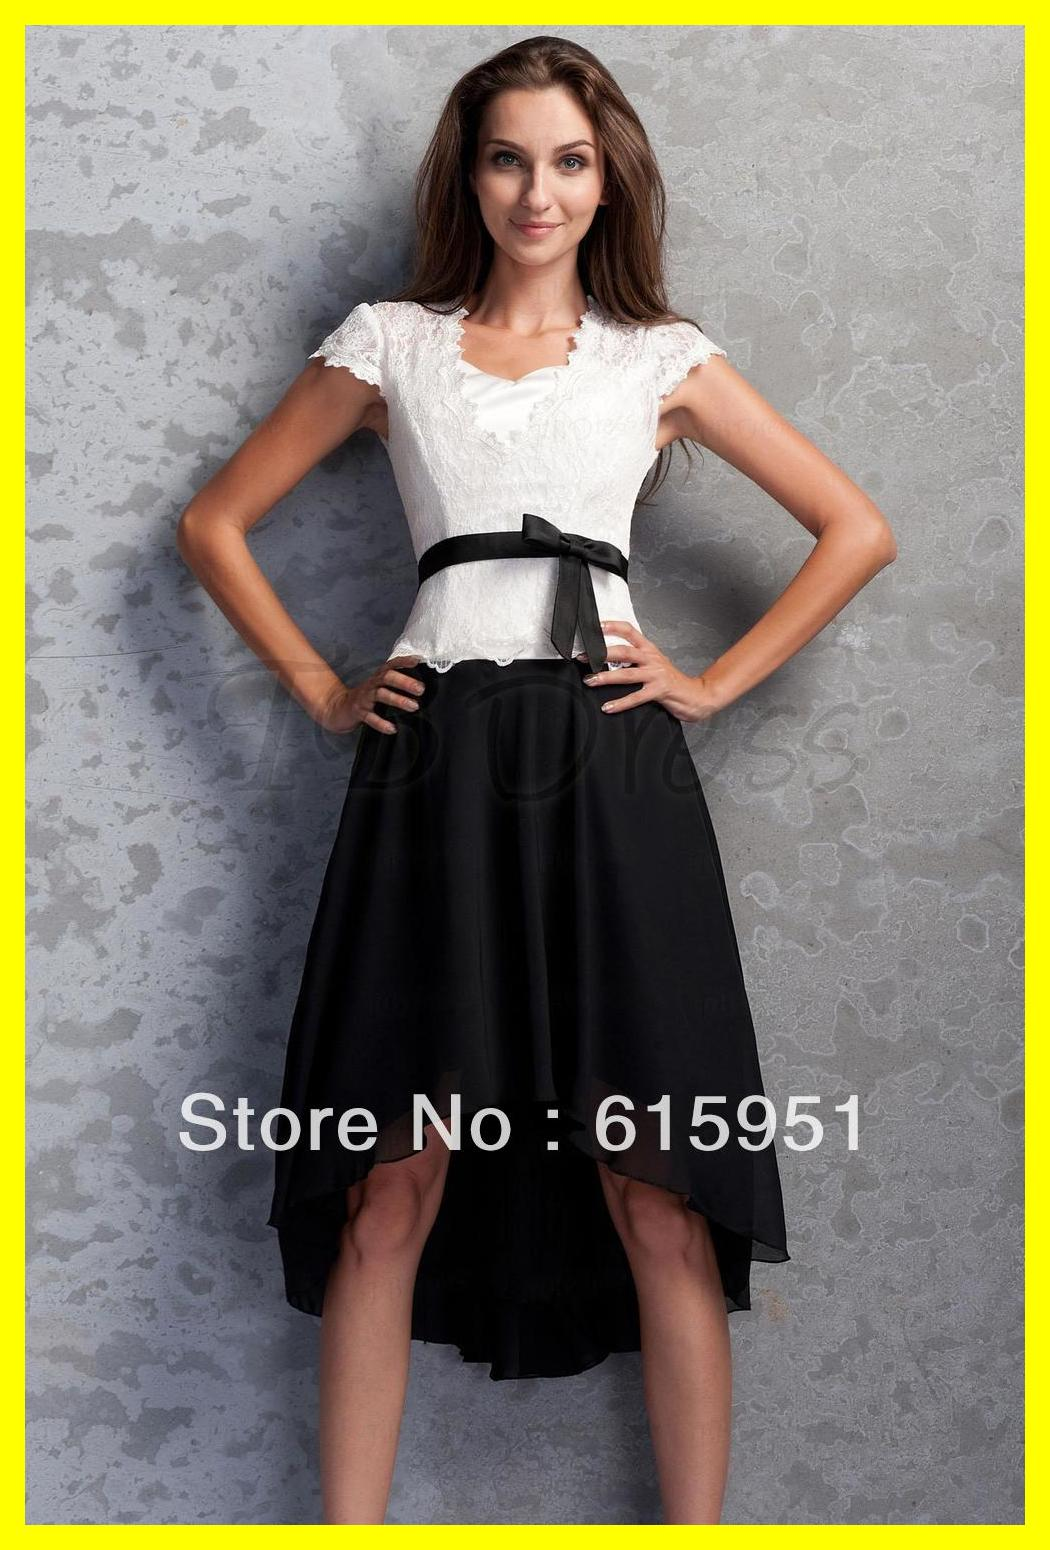 al9mg7p1yos.gq | Canadian Best and Most Fashionable Store for Prom Dresses, Grad Dresses, Evening Dresses, Cocktail Dresses.